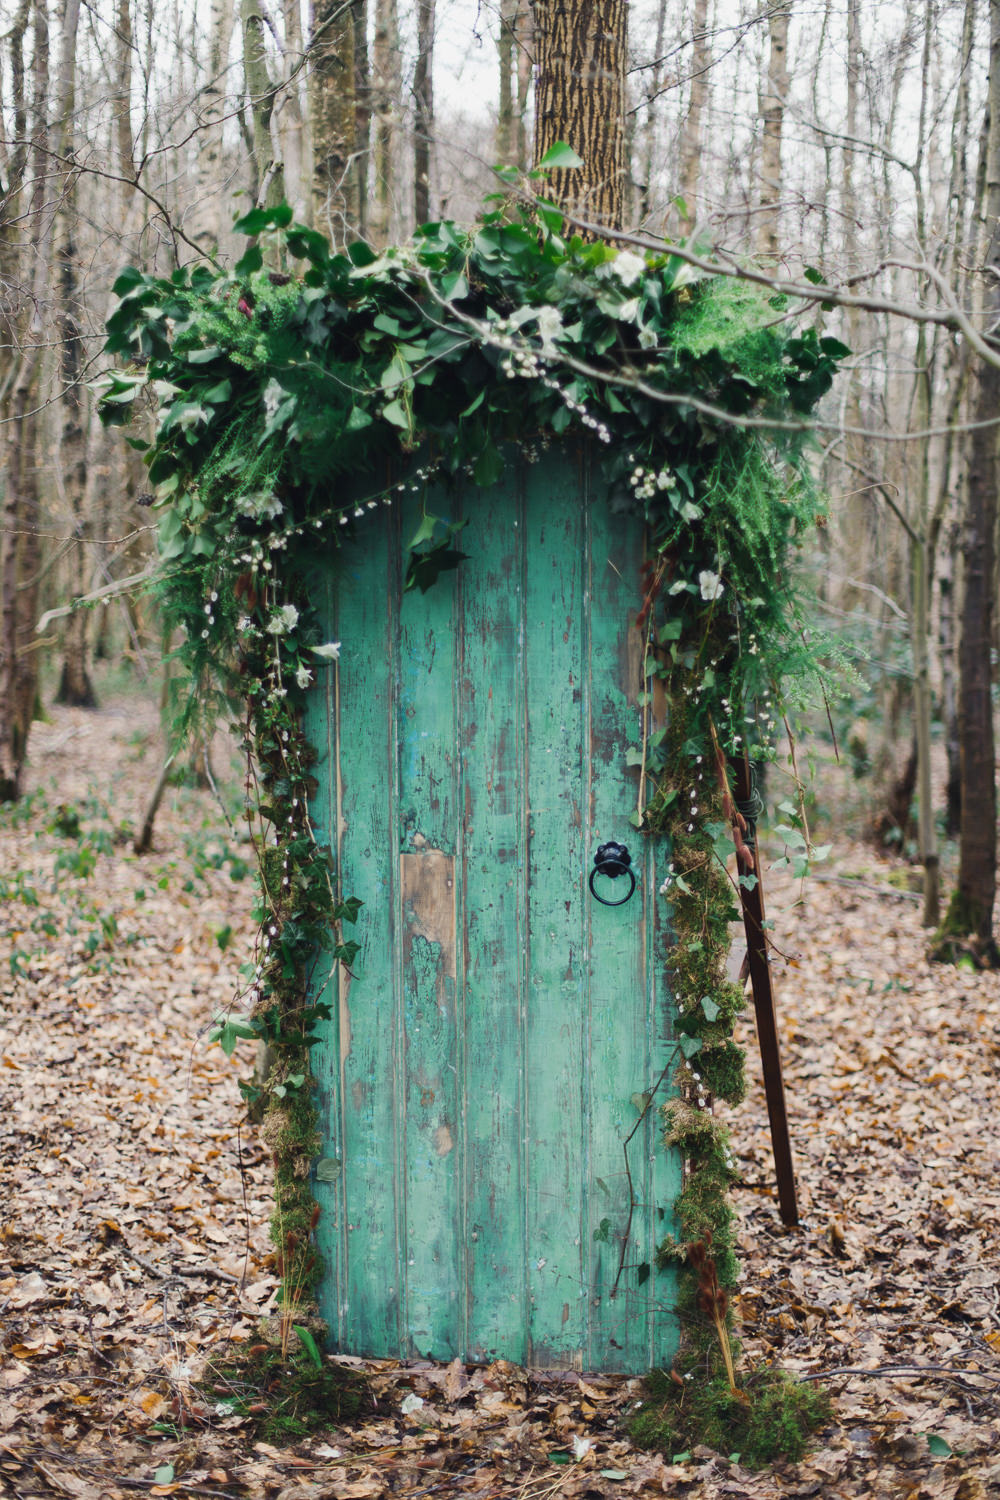 Antique Door Emerald Green Vintage Distressed Greenery Foliage Decor Nordic Woodland Elopement Wedding Ideas Nina Wernicke Photography